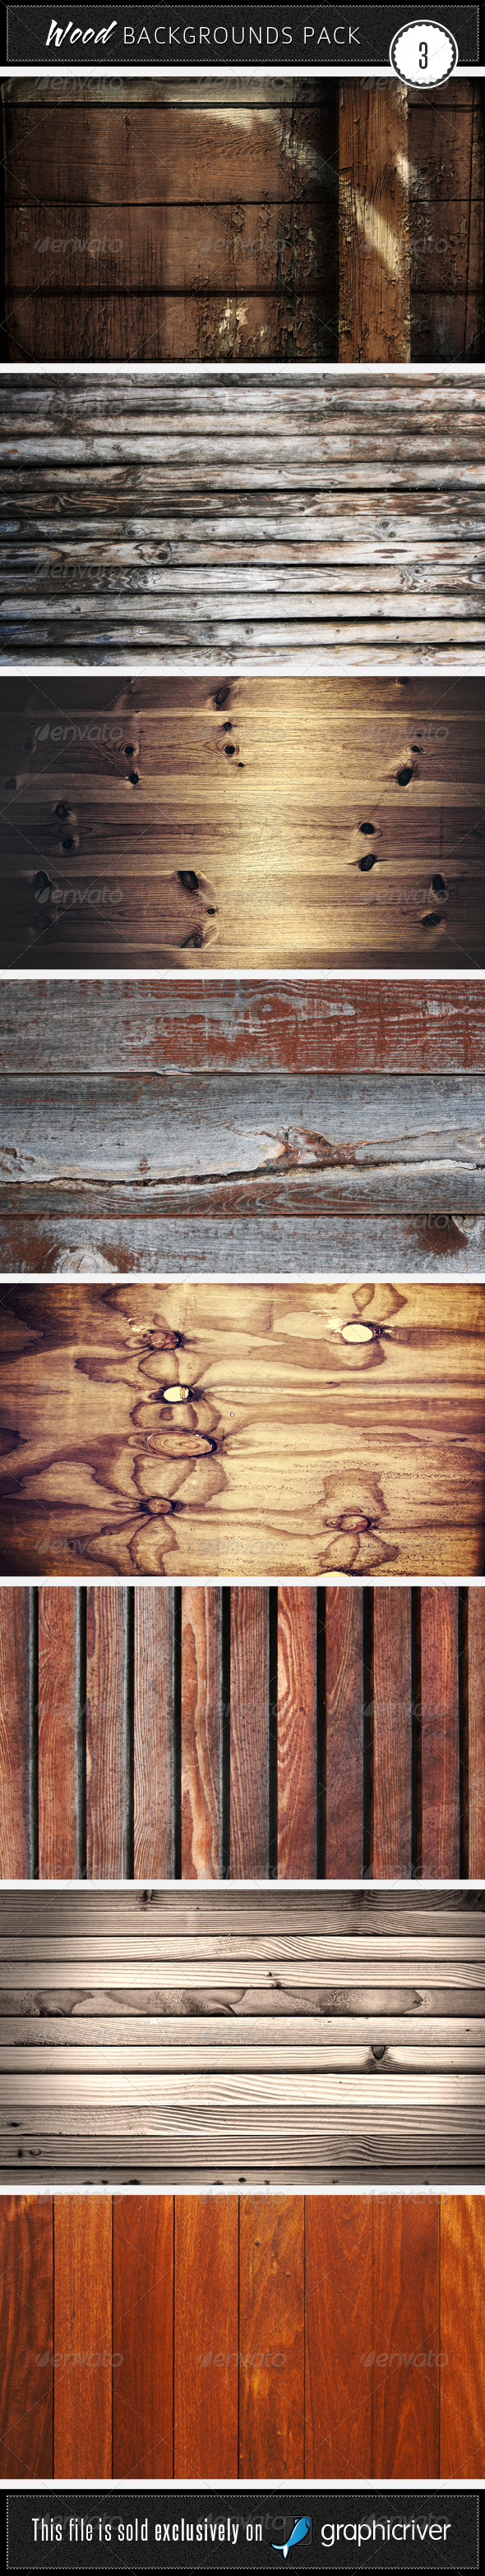 Wood Backgrounds Pack 3